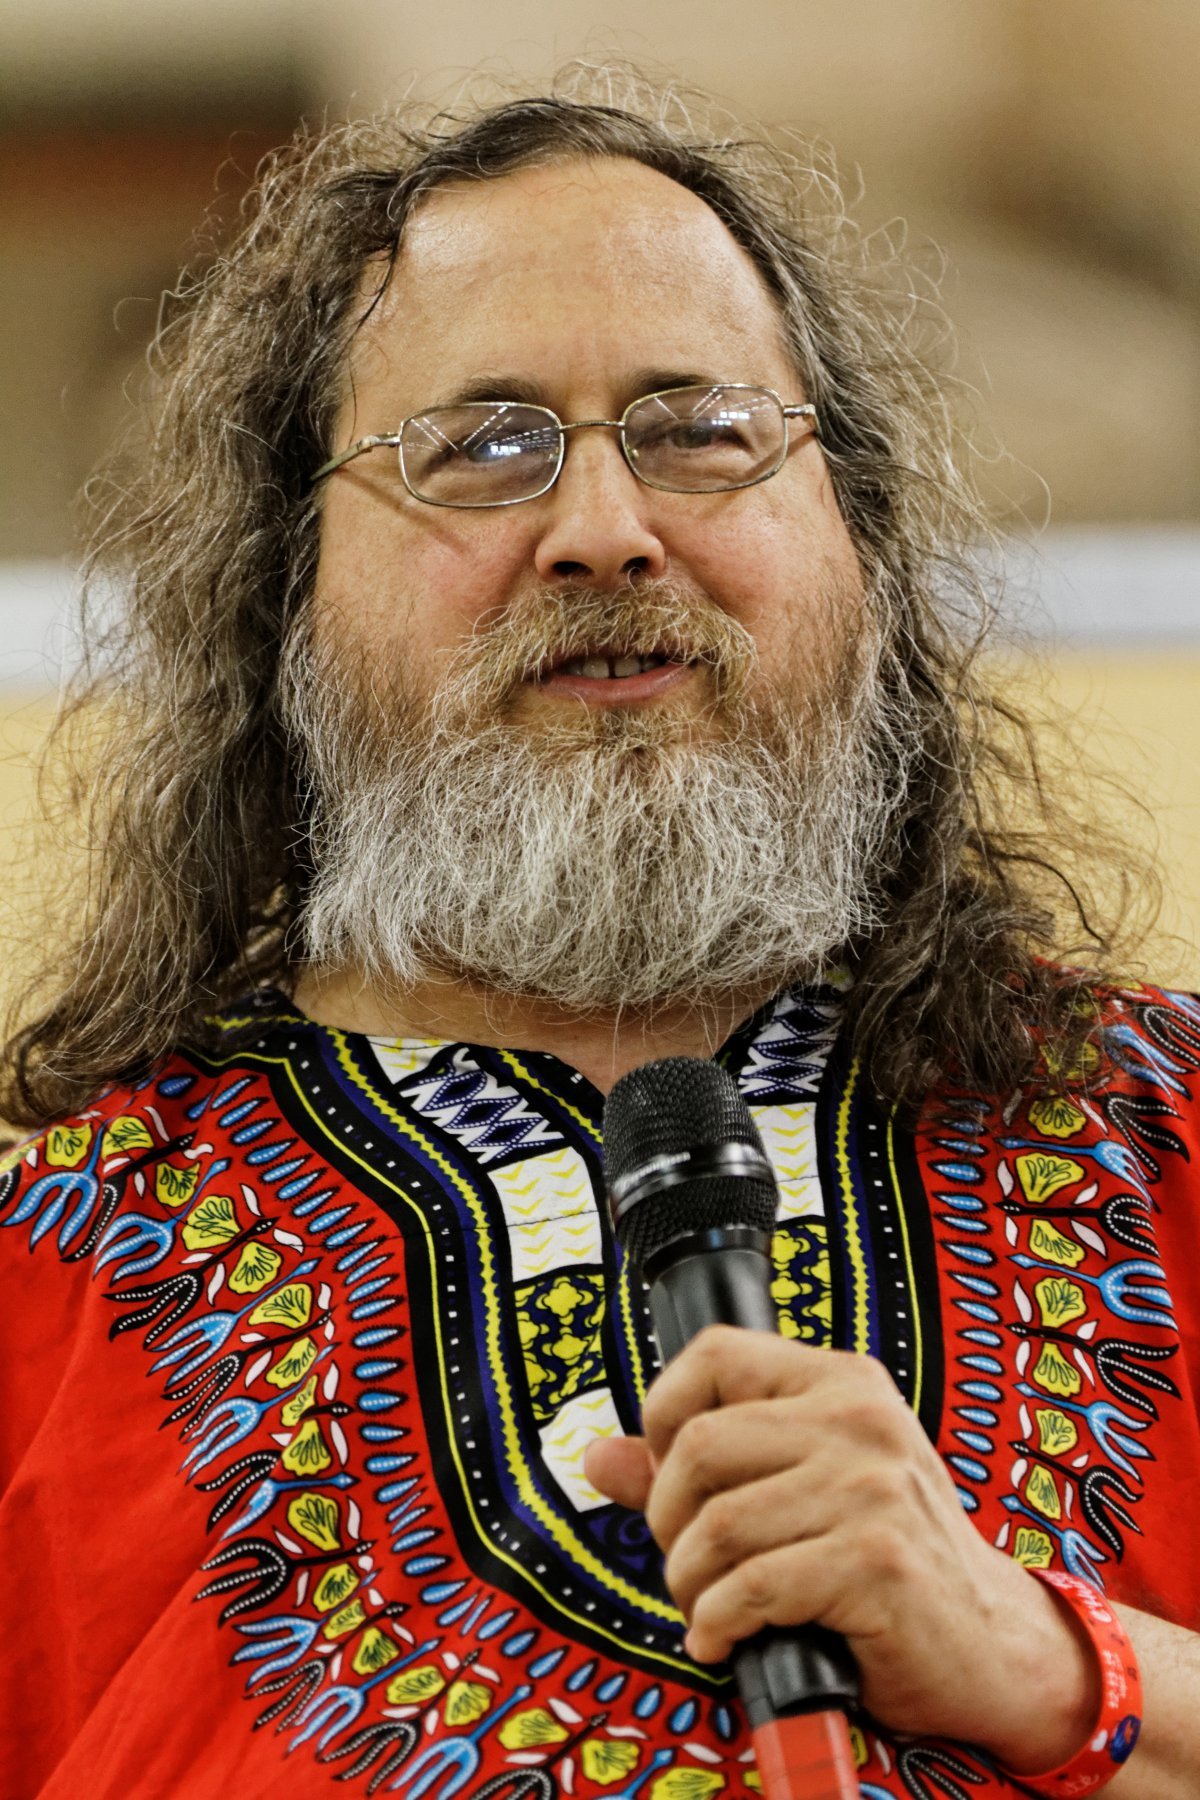 Richard Stallman, software freedom fighter